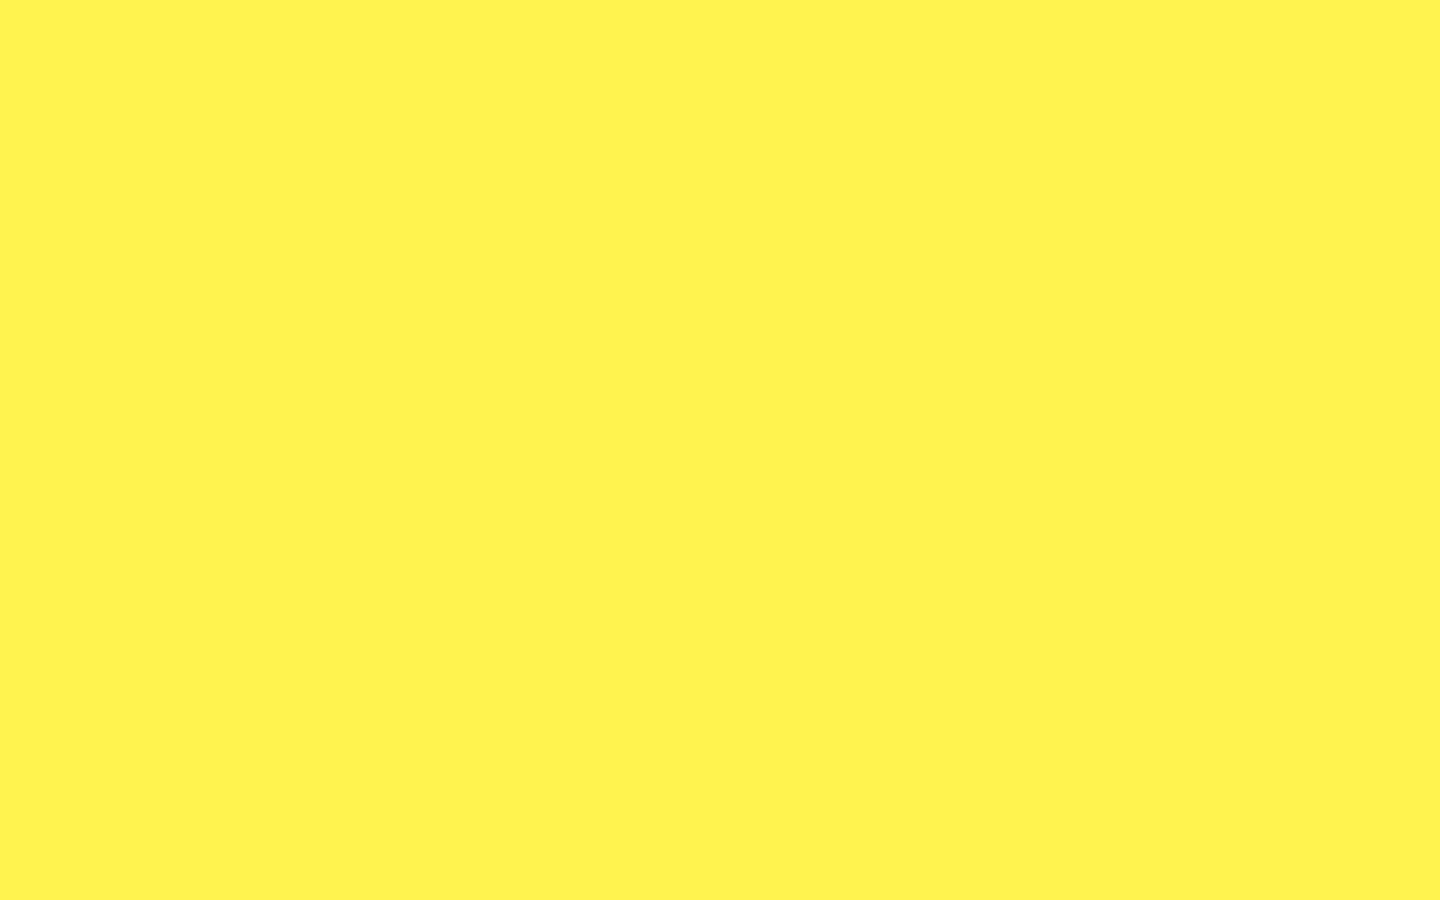 1440x900 Lemon Yellow Solid Color Background